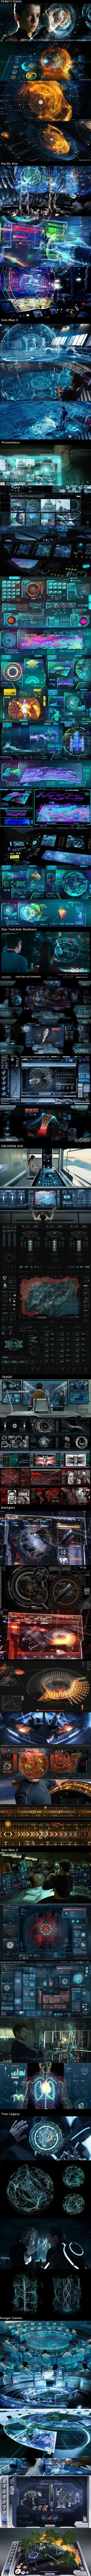 Sci-fi UI from movie